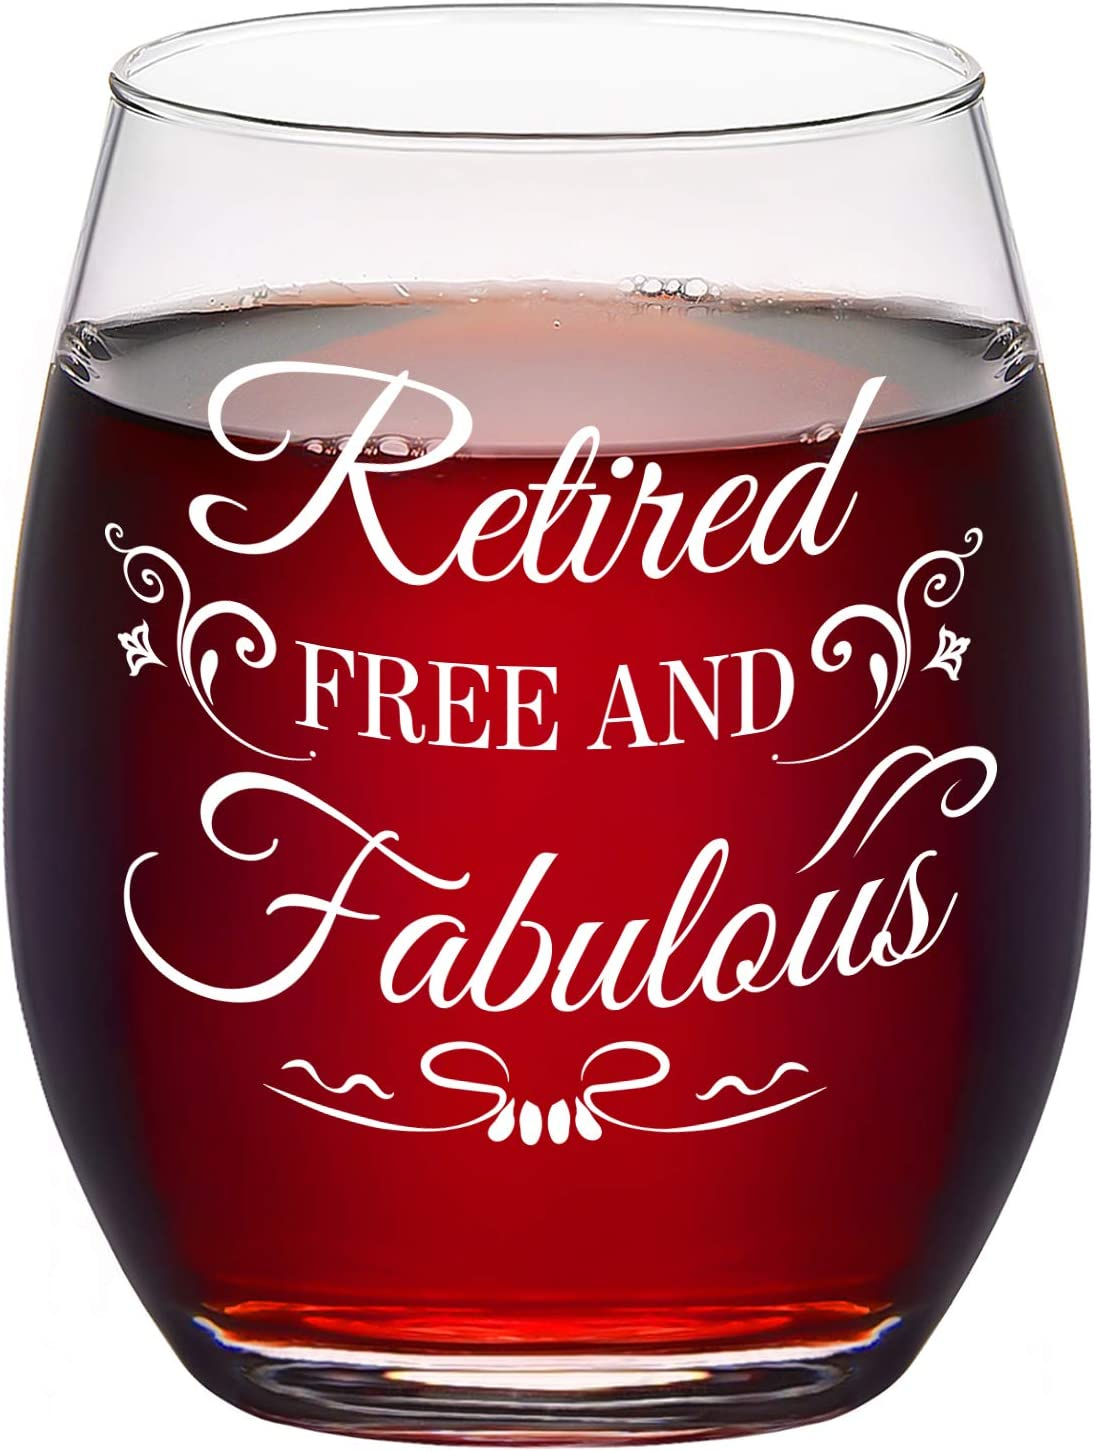 Max 86% OFF Retirement Wine Glass Retired Free Stemless Fabulous Al sold out. G and